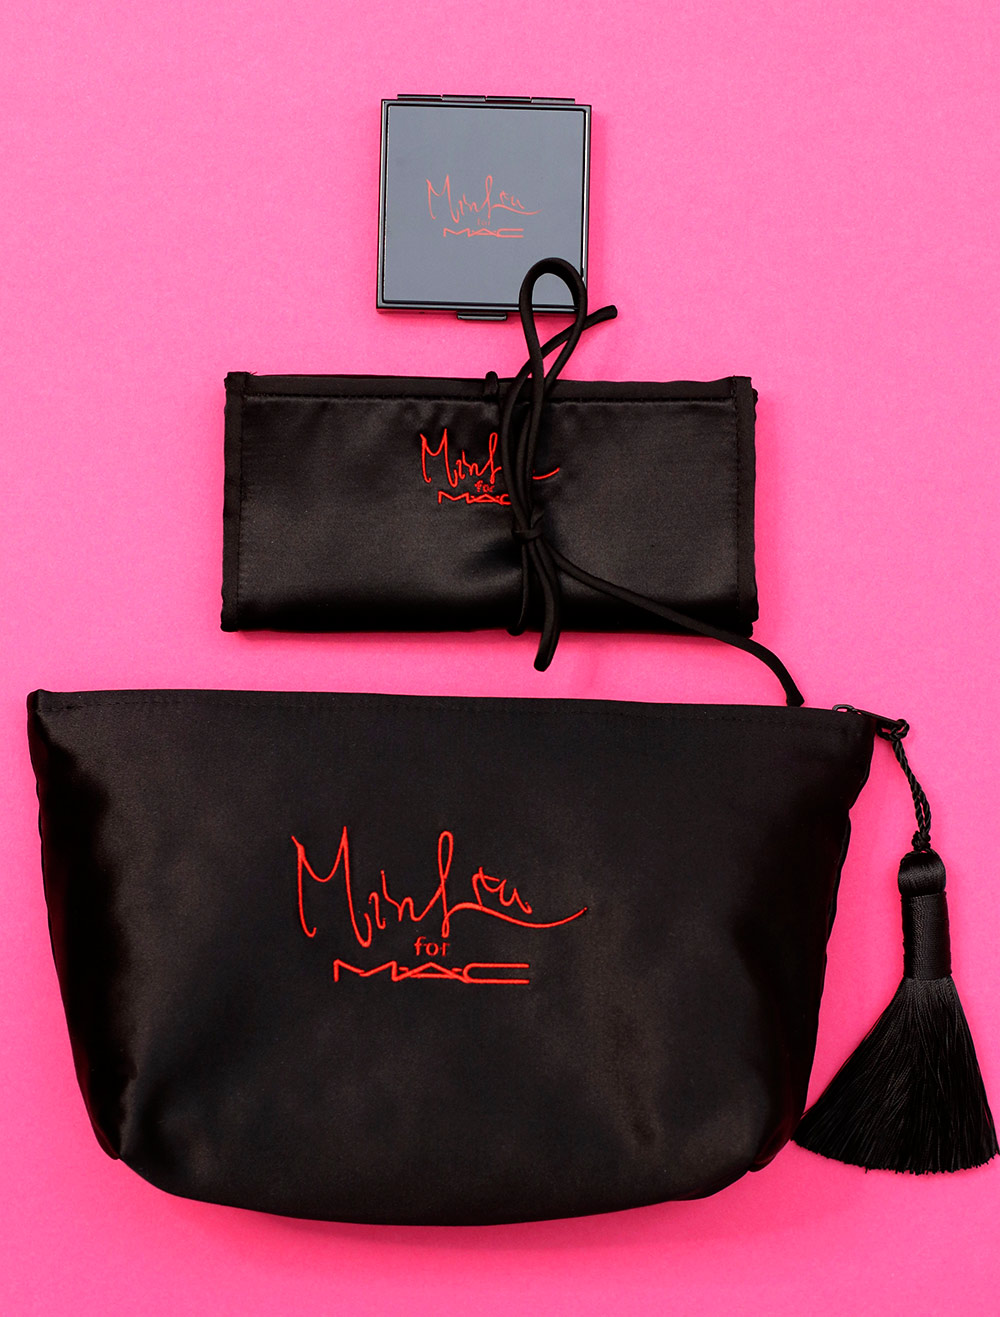 mac min liu pearlmatte brush bag makeup bag